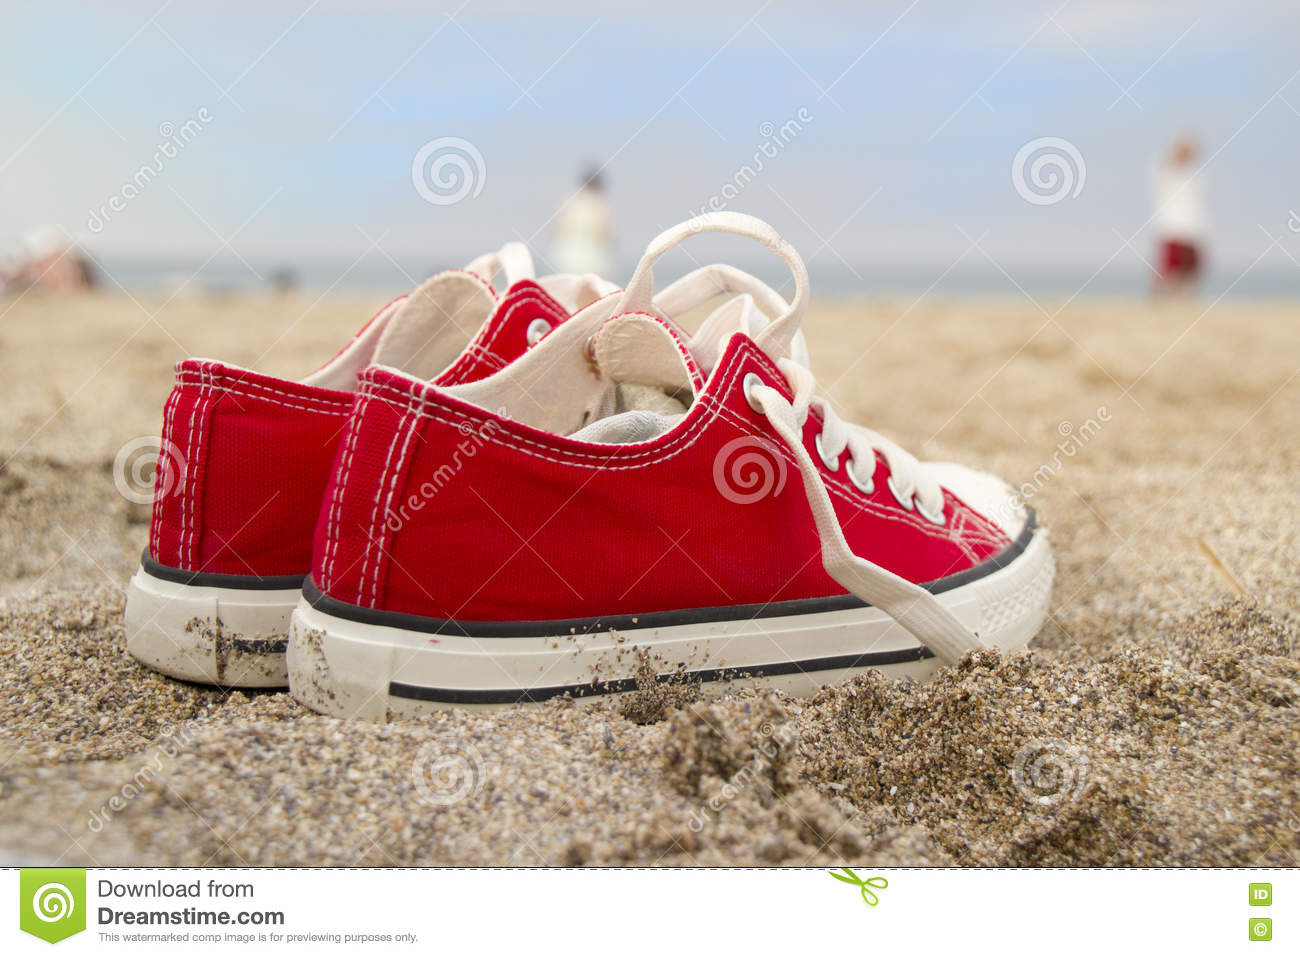 Red sneakers on sandy beach